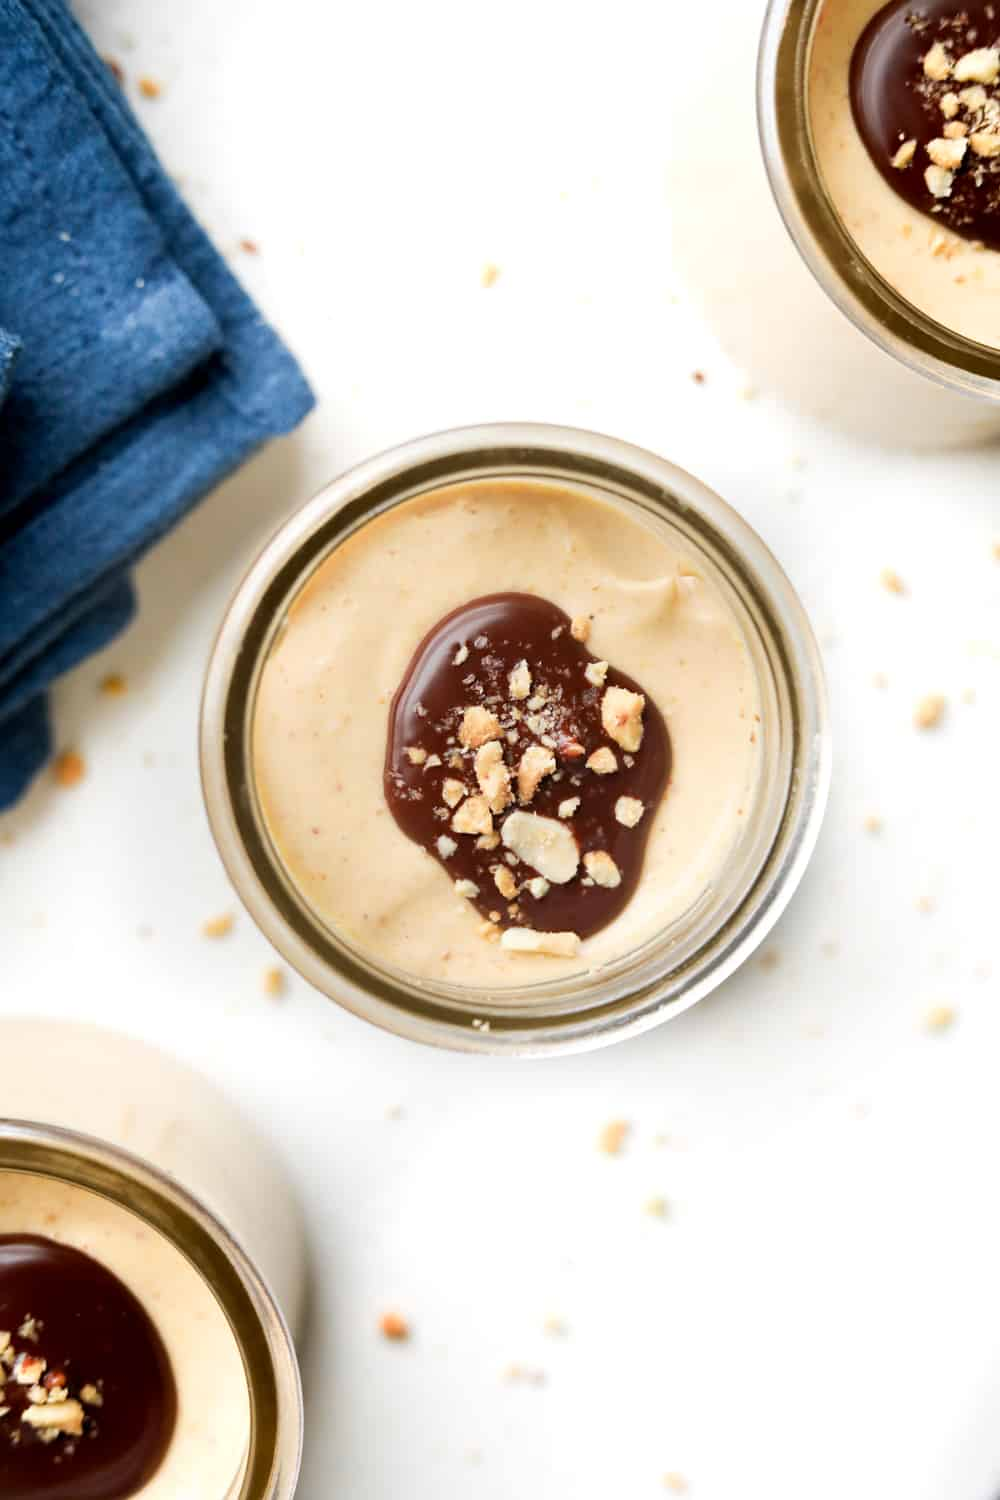 A jar of peanut butter keto mousse sitting on a table next to a napkin.